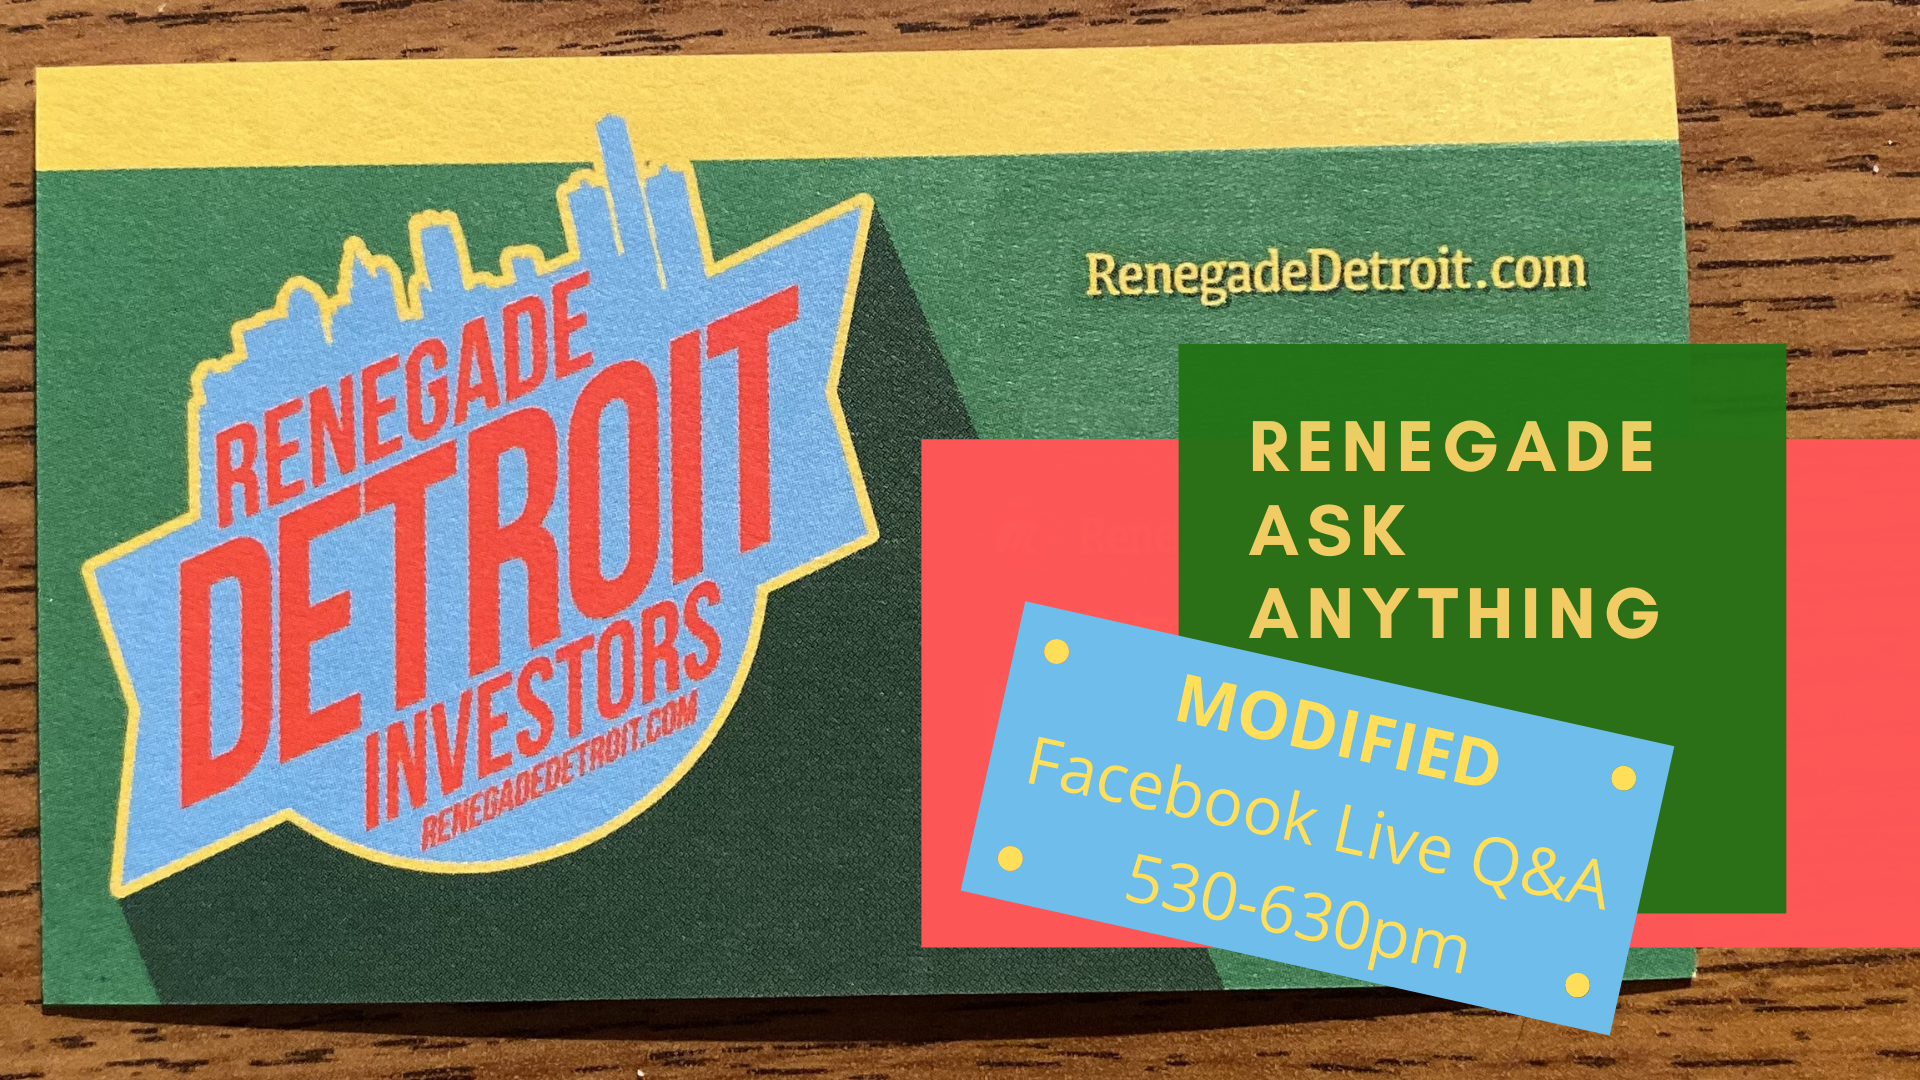 MODIFIED: Renegade Facebook LIVE Ask Anything March Modified 2020